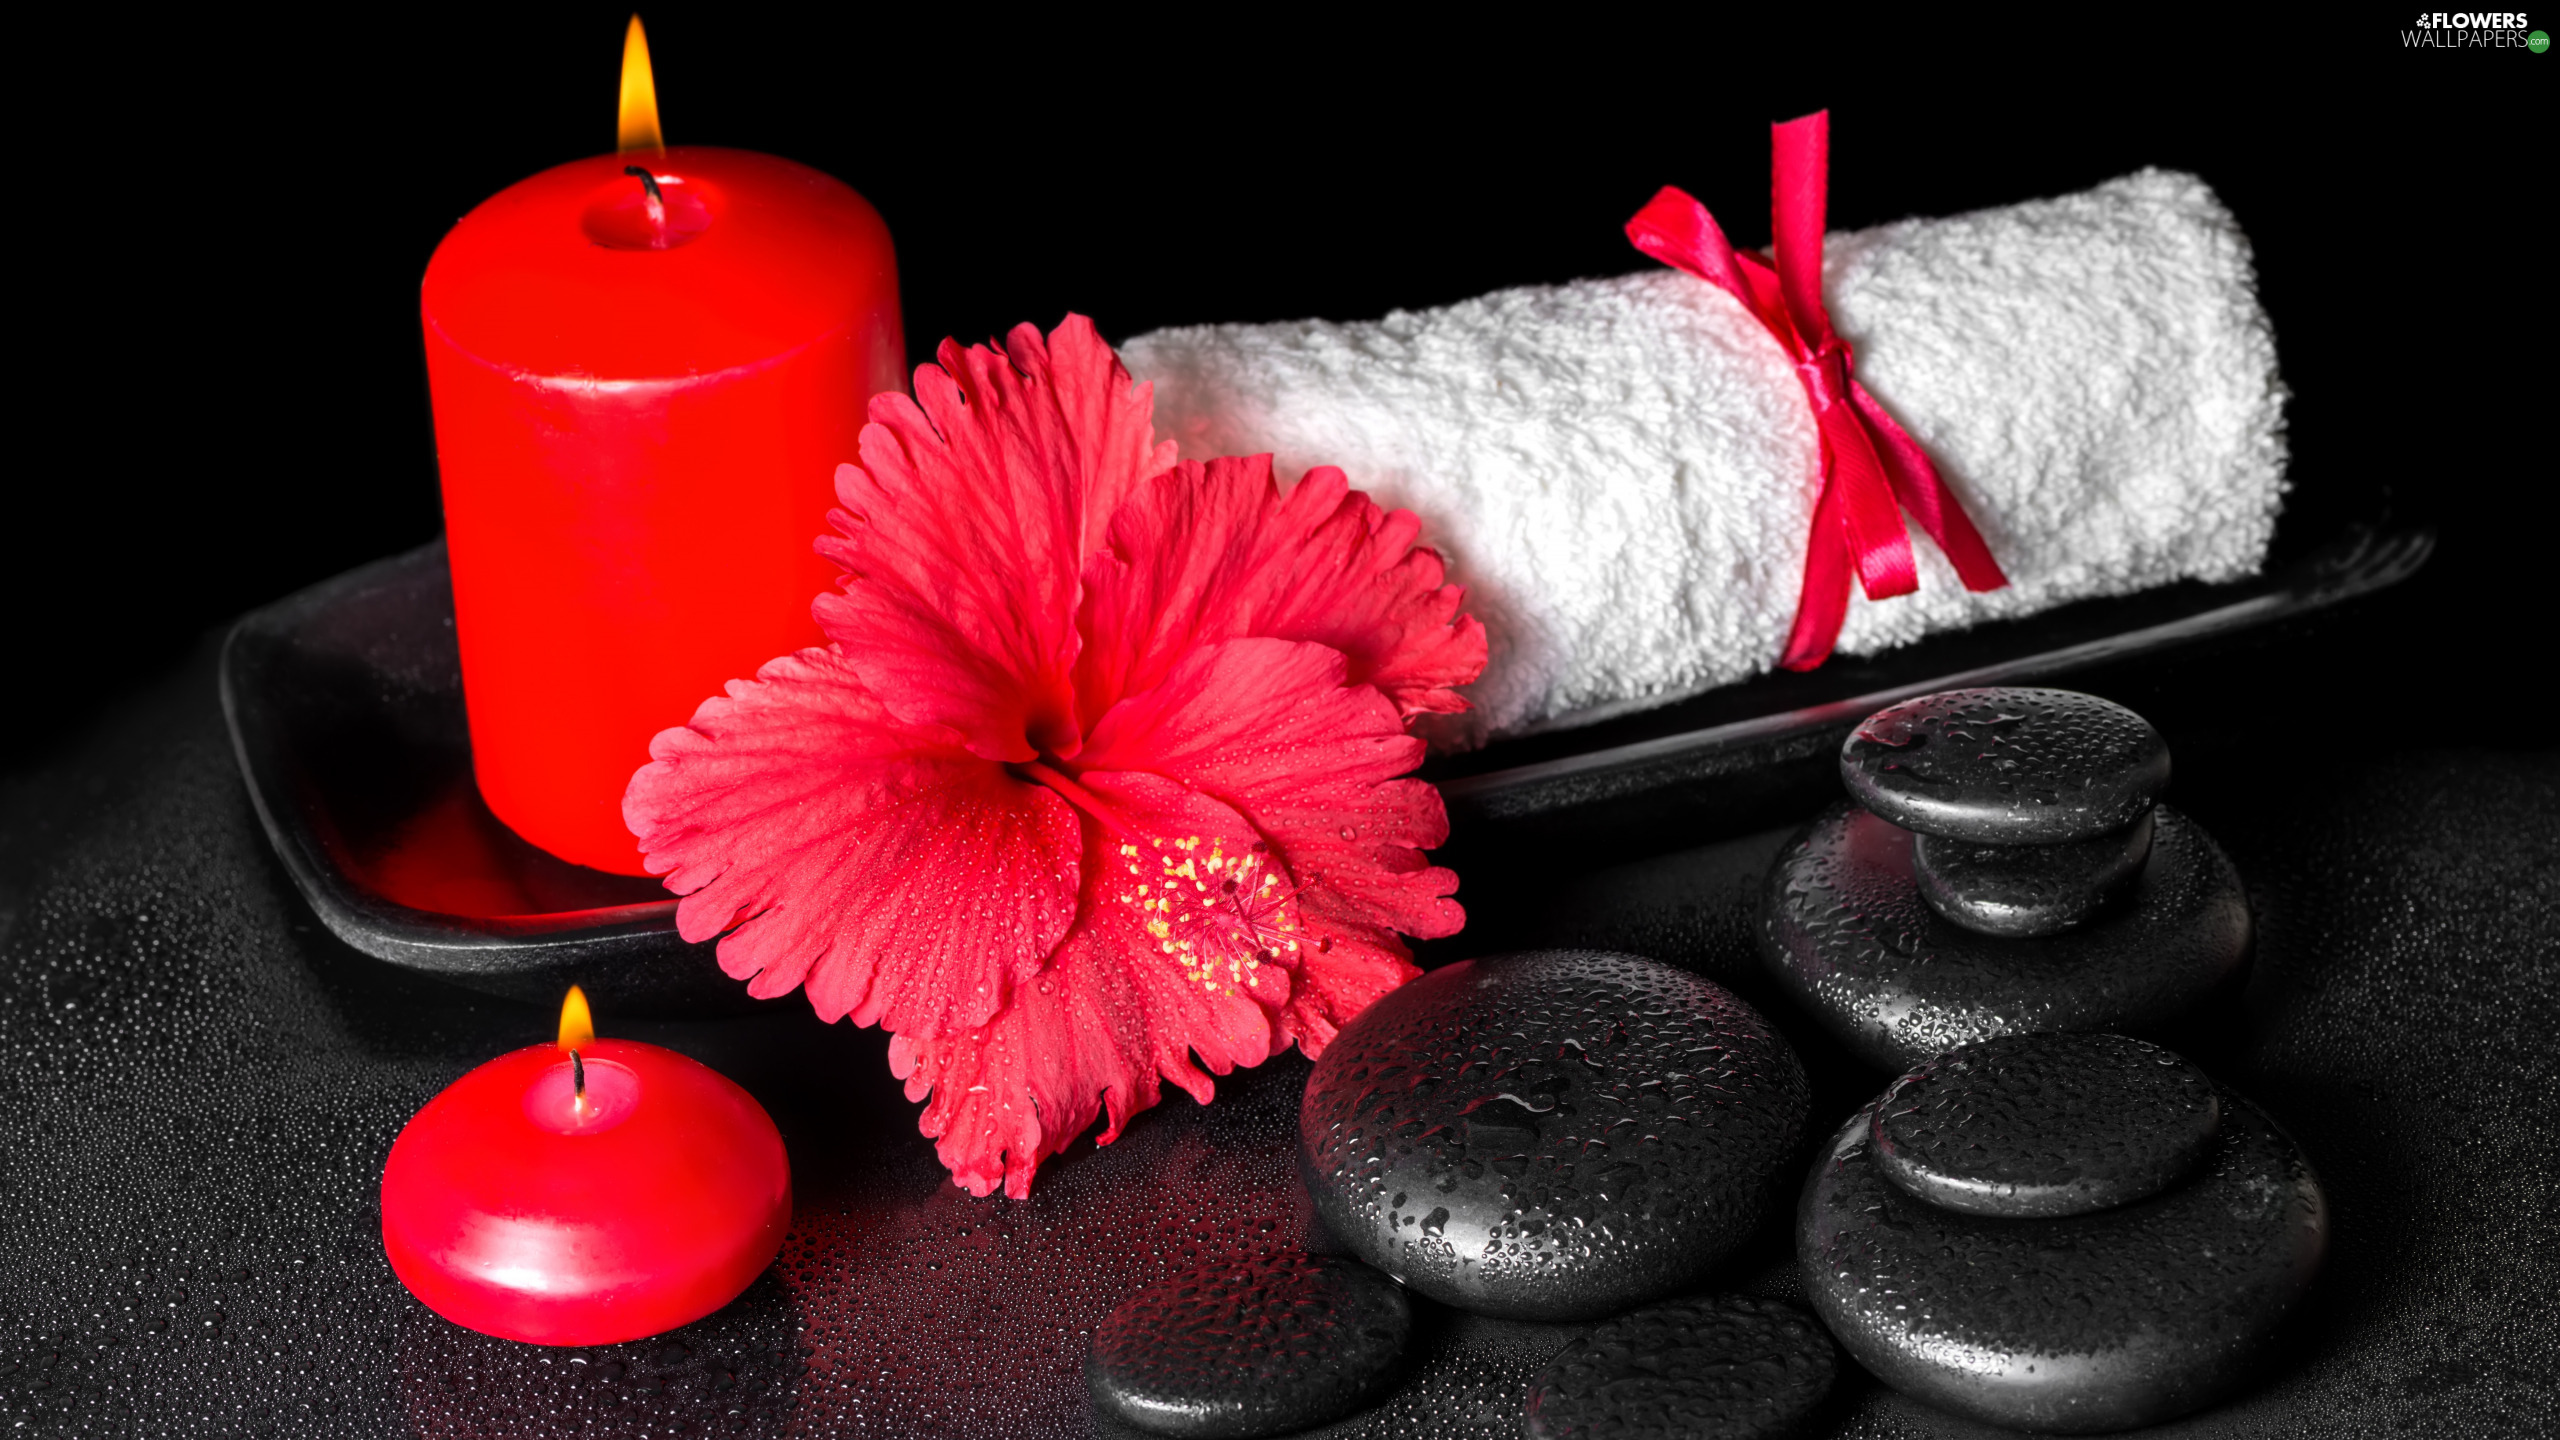 Candles, Stones, tray, Towel, hibiskus, Red, Spa, Colourfull Flowers